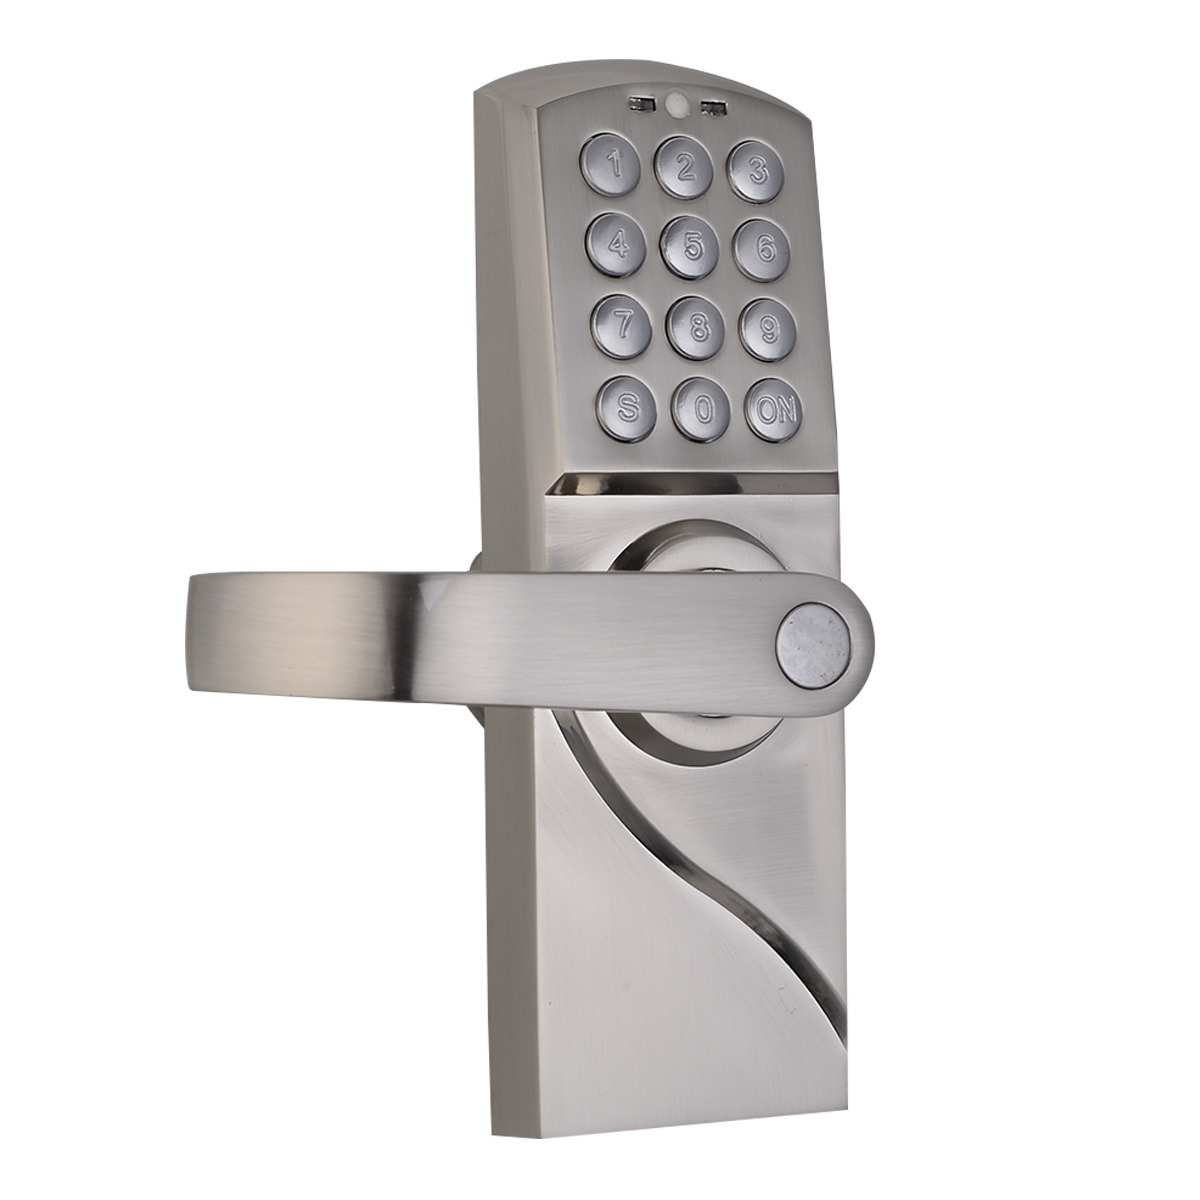 keypad door knob photo - 1